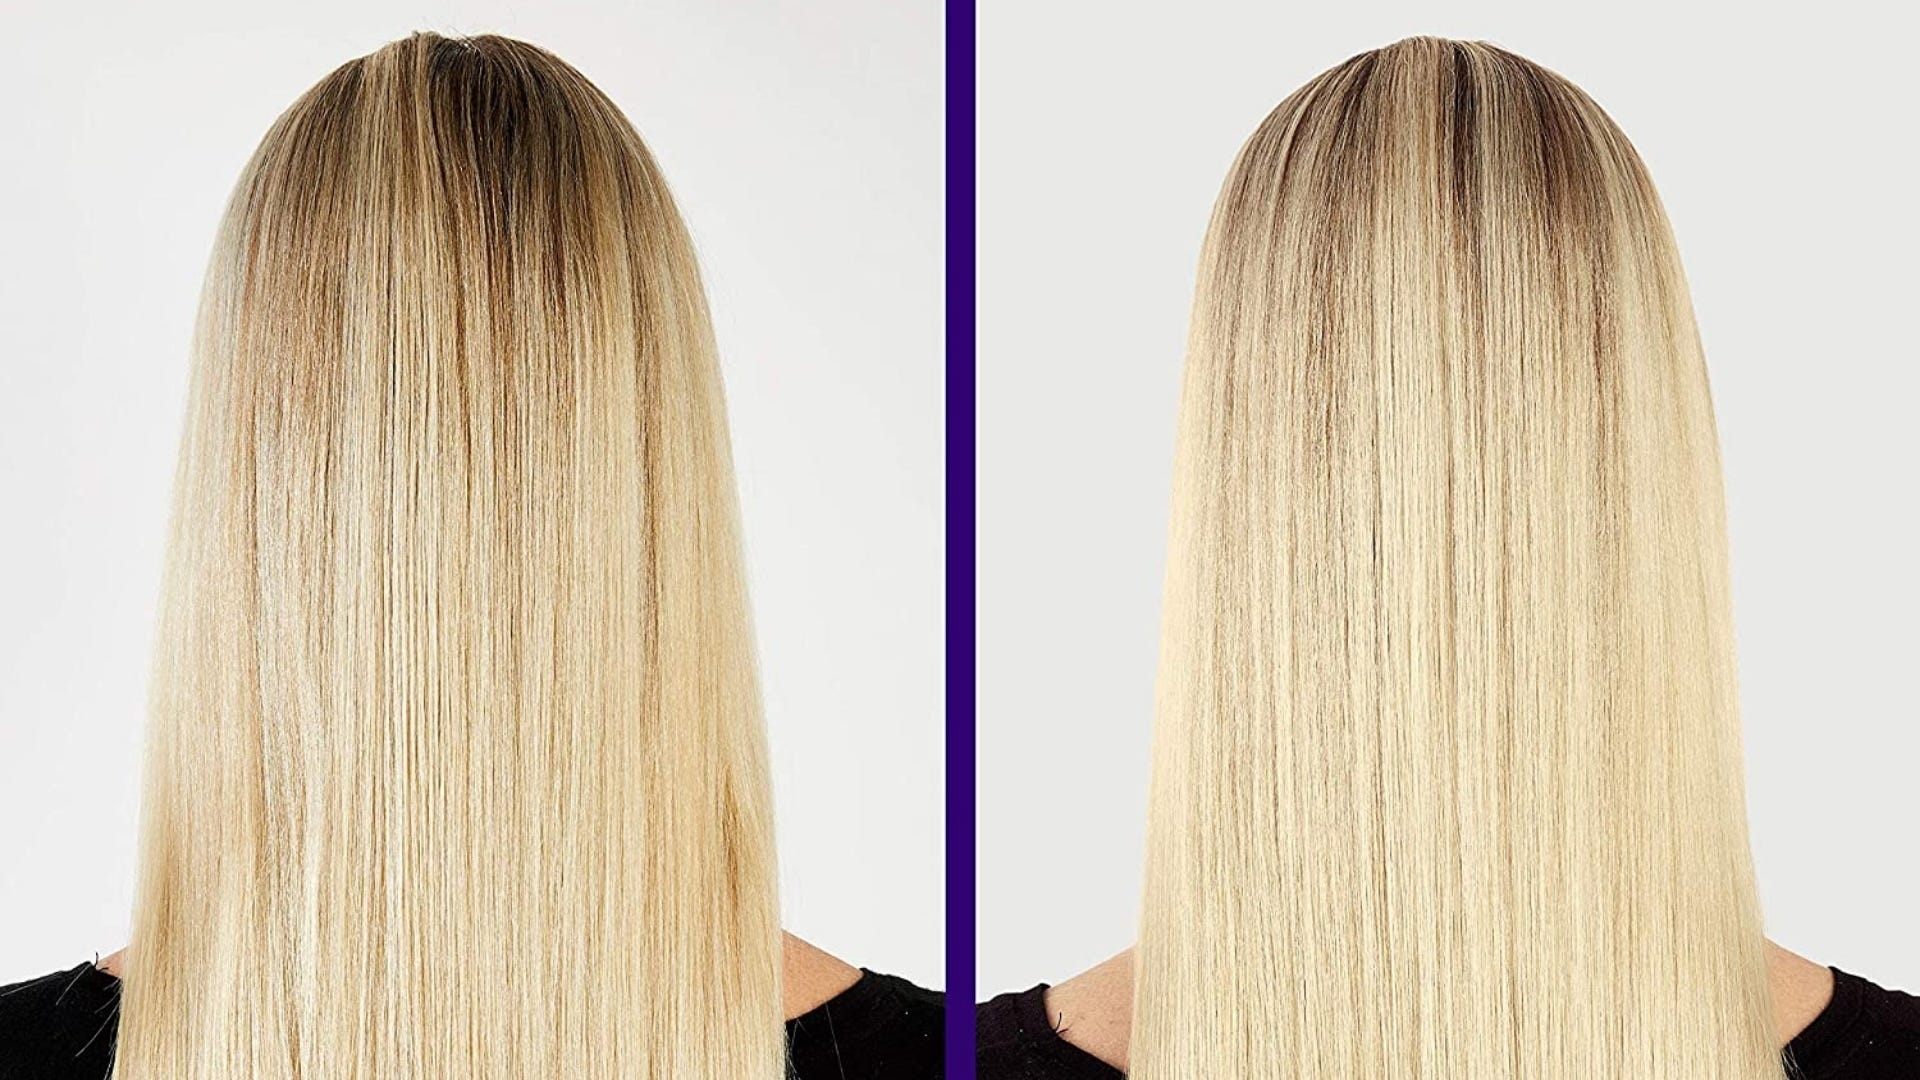 Side by side photos of girl with blonde hair that has been toned